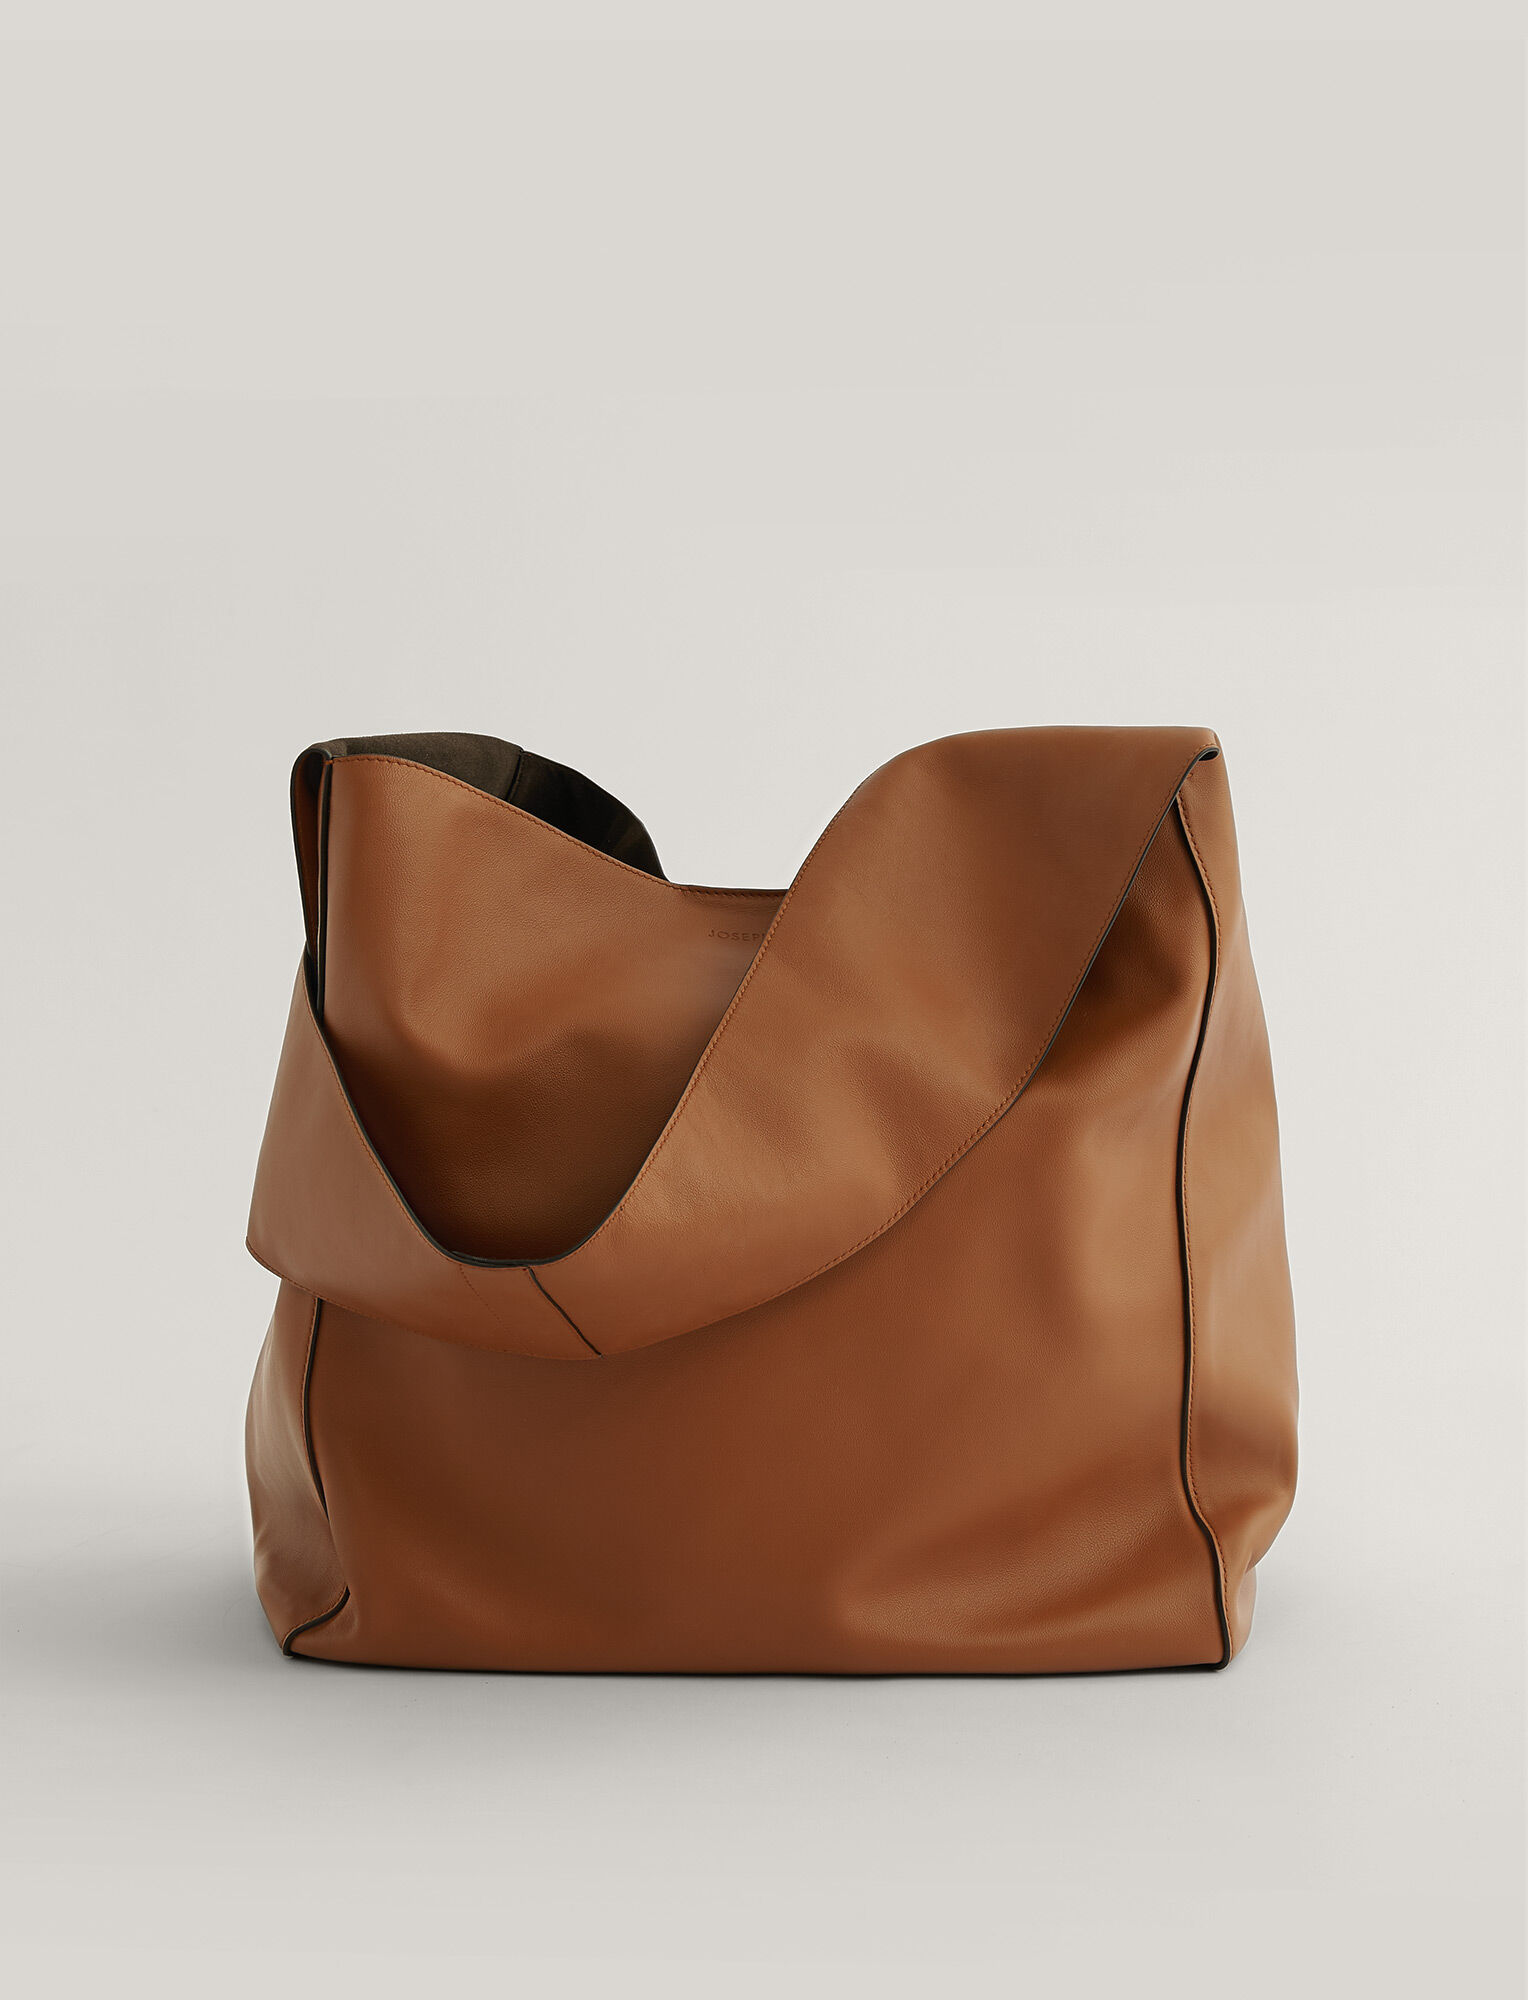 Joseph, Sac souple XL, in RUST